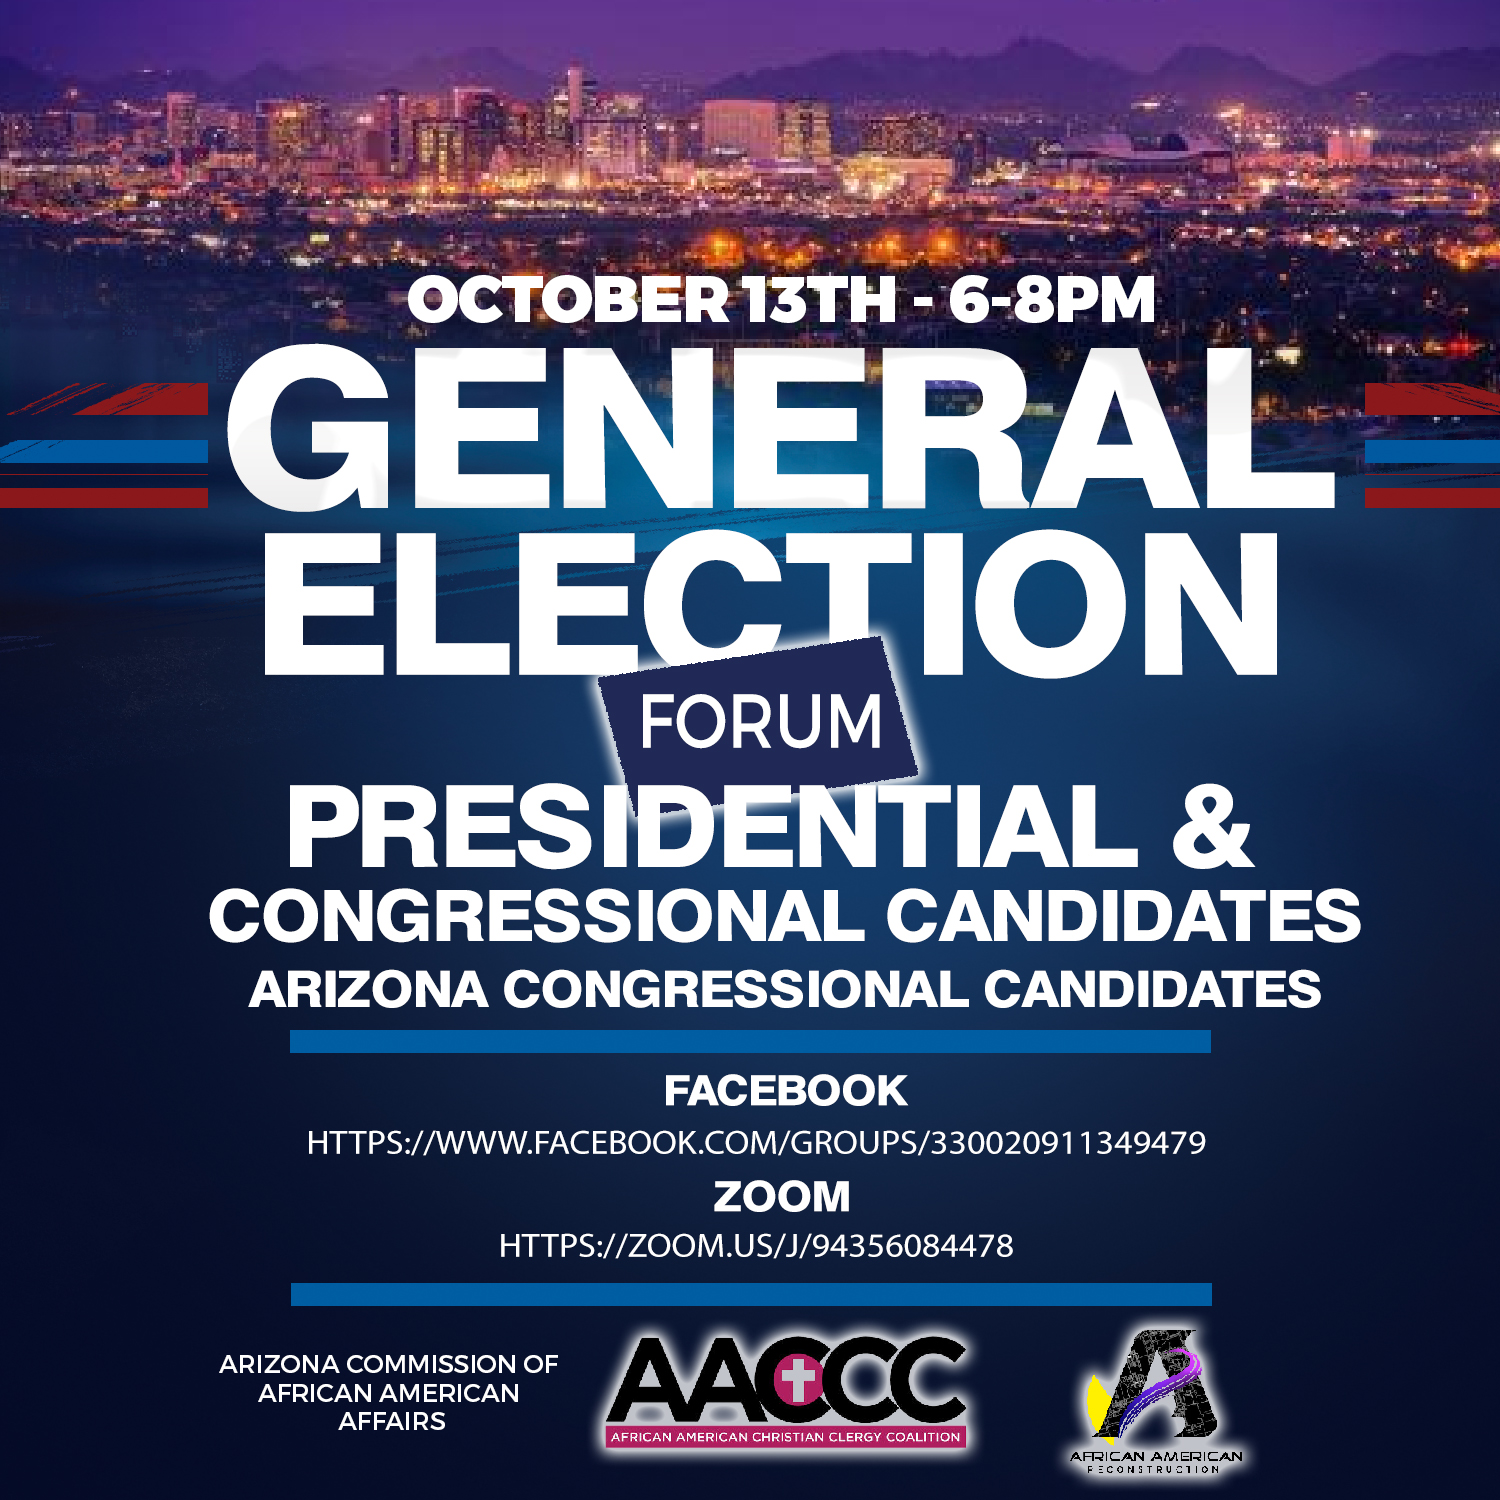 Info about General Election Forum